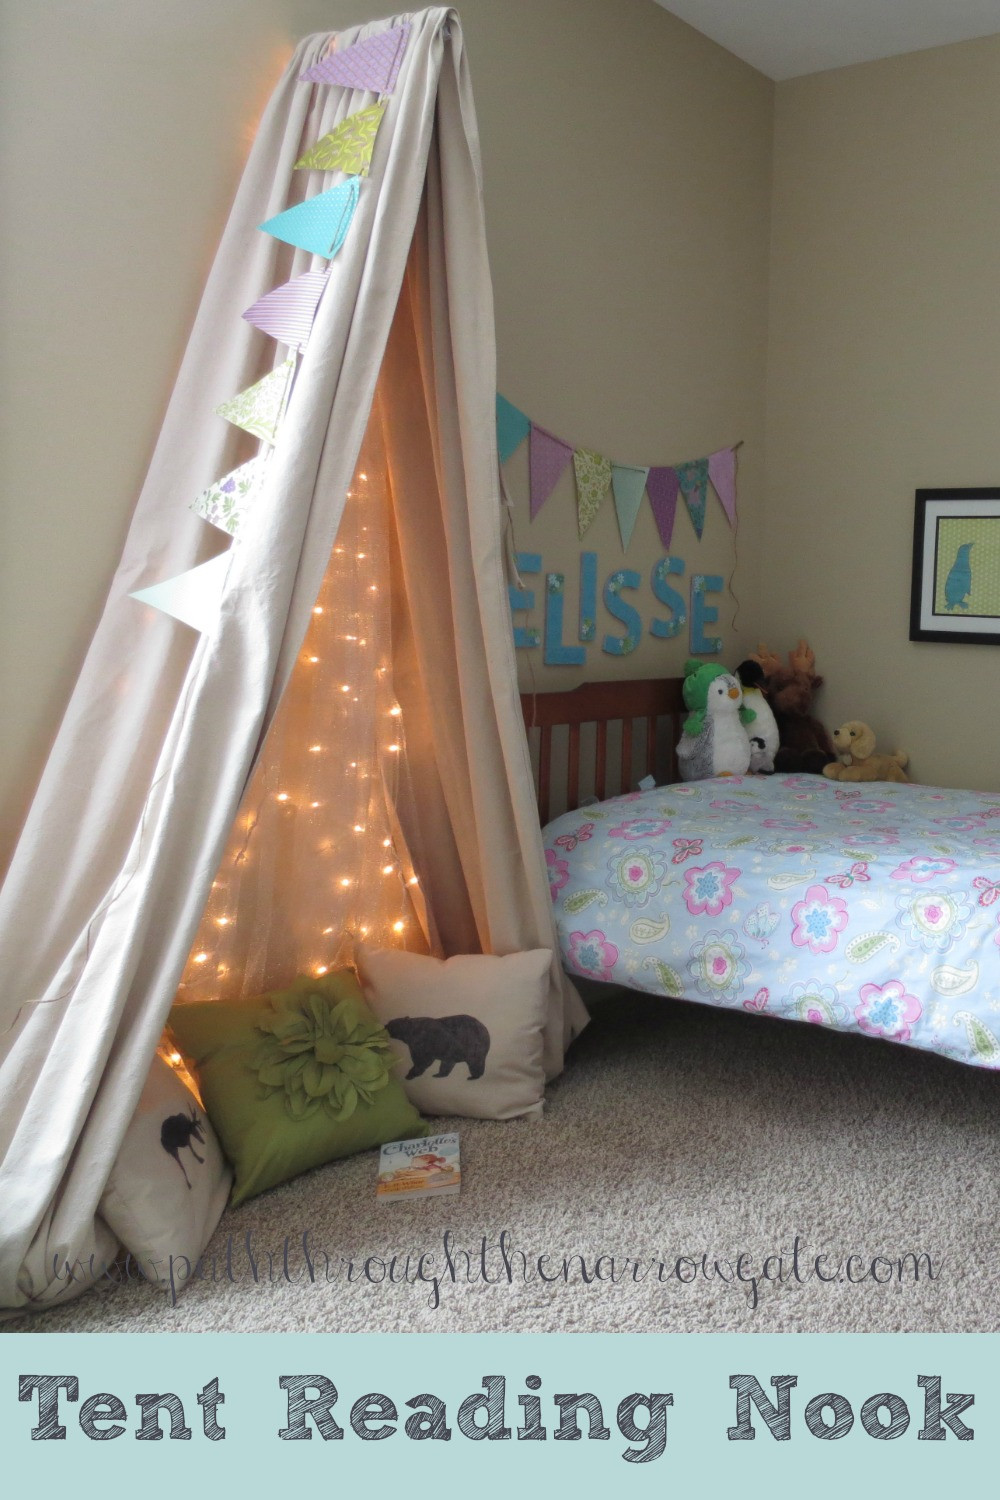 Best ideas about Kids Room Tent . Save or Pin Tent Reading Nook for a Small Space Now.